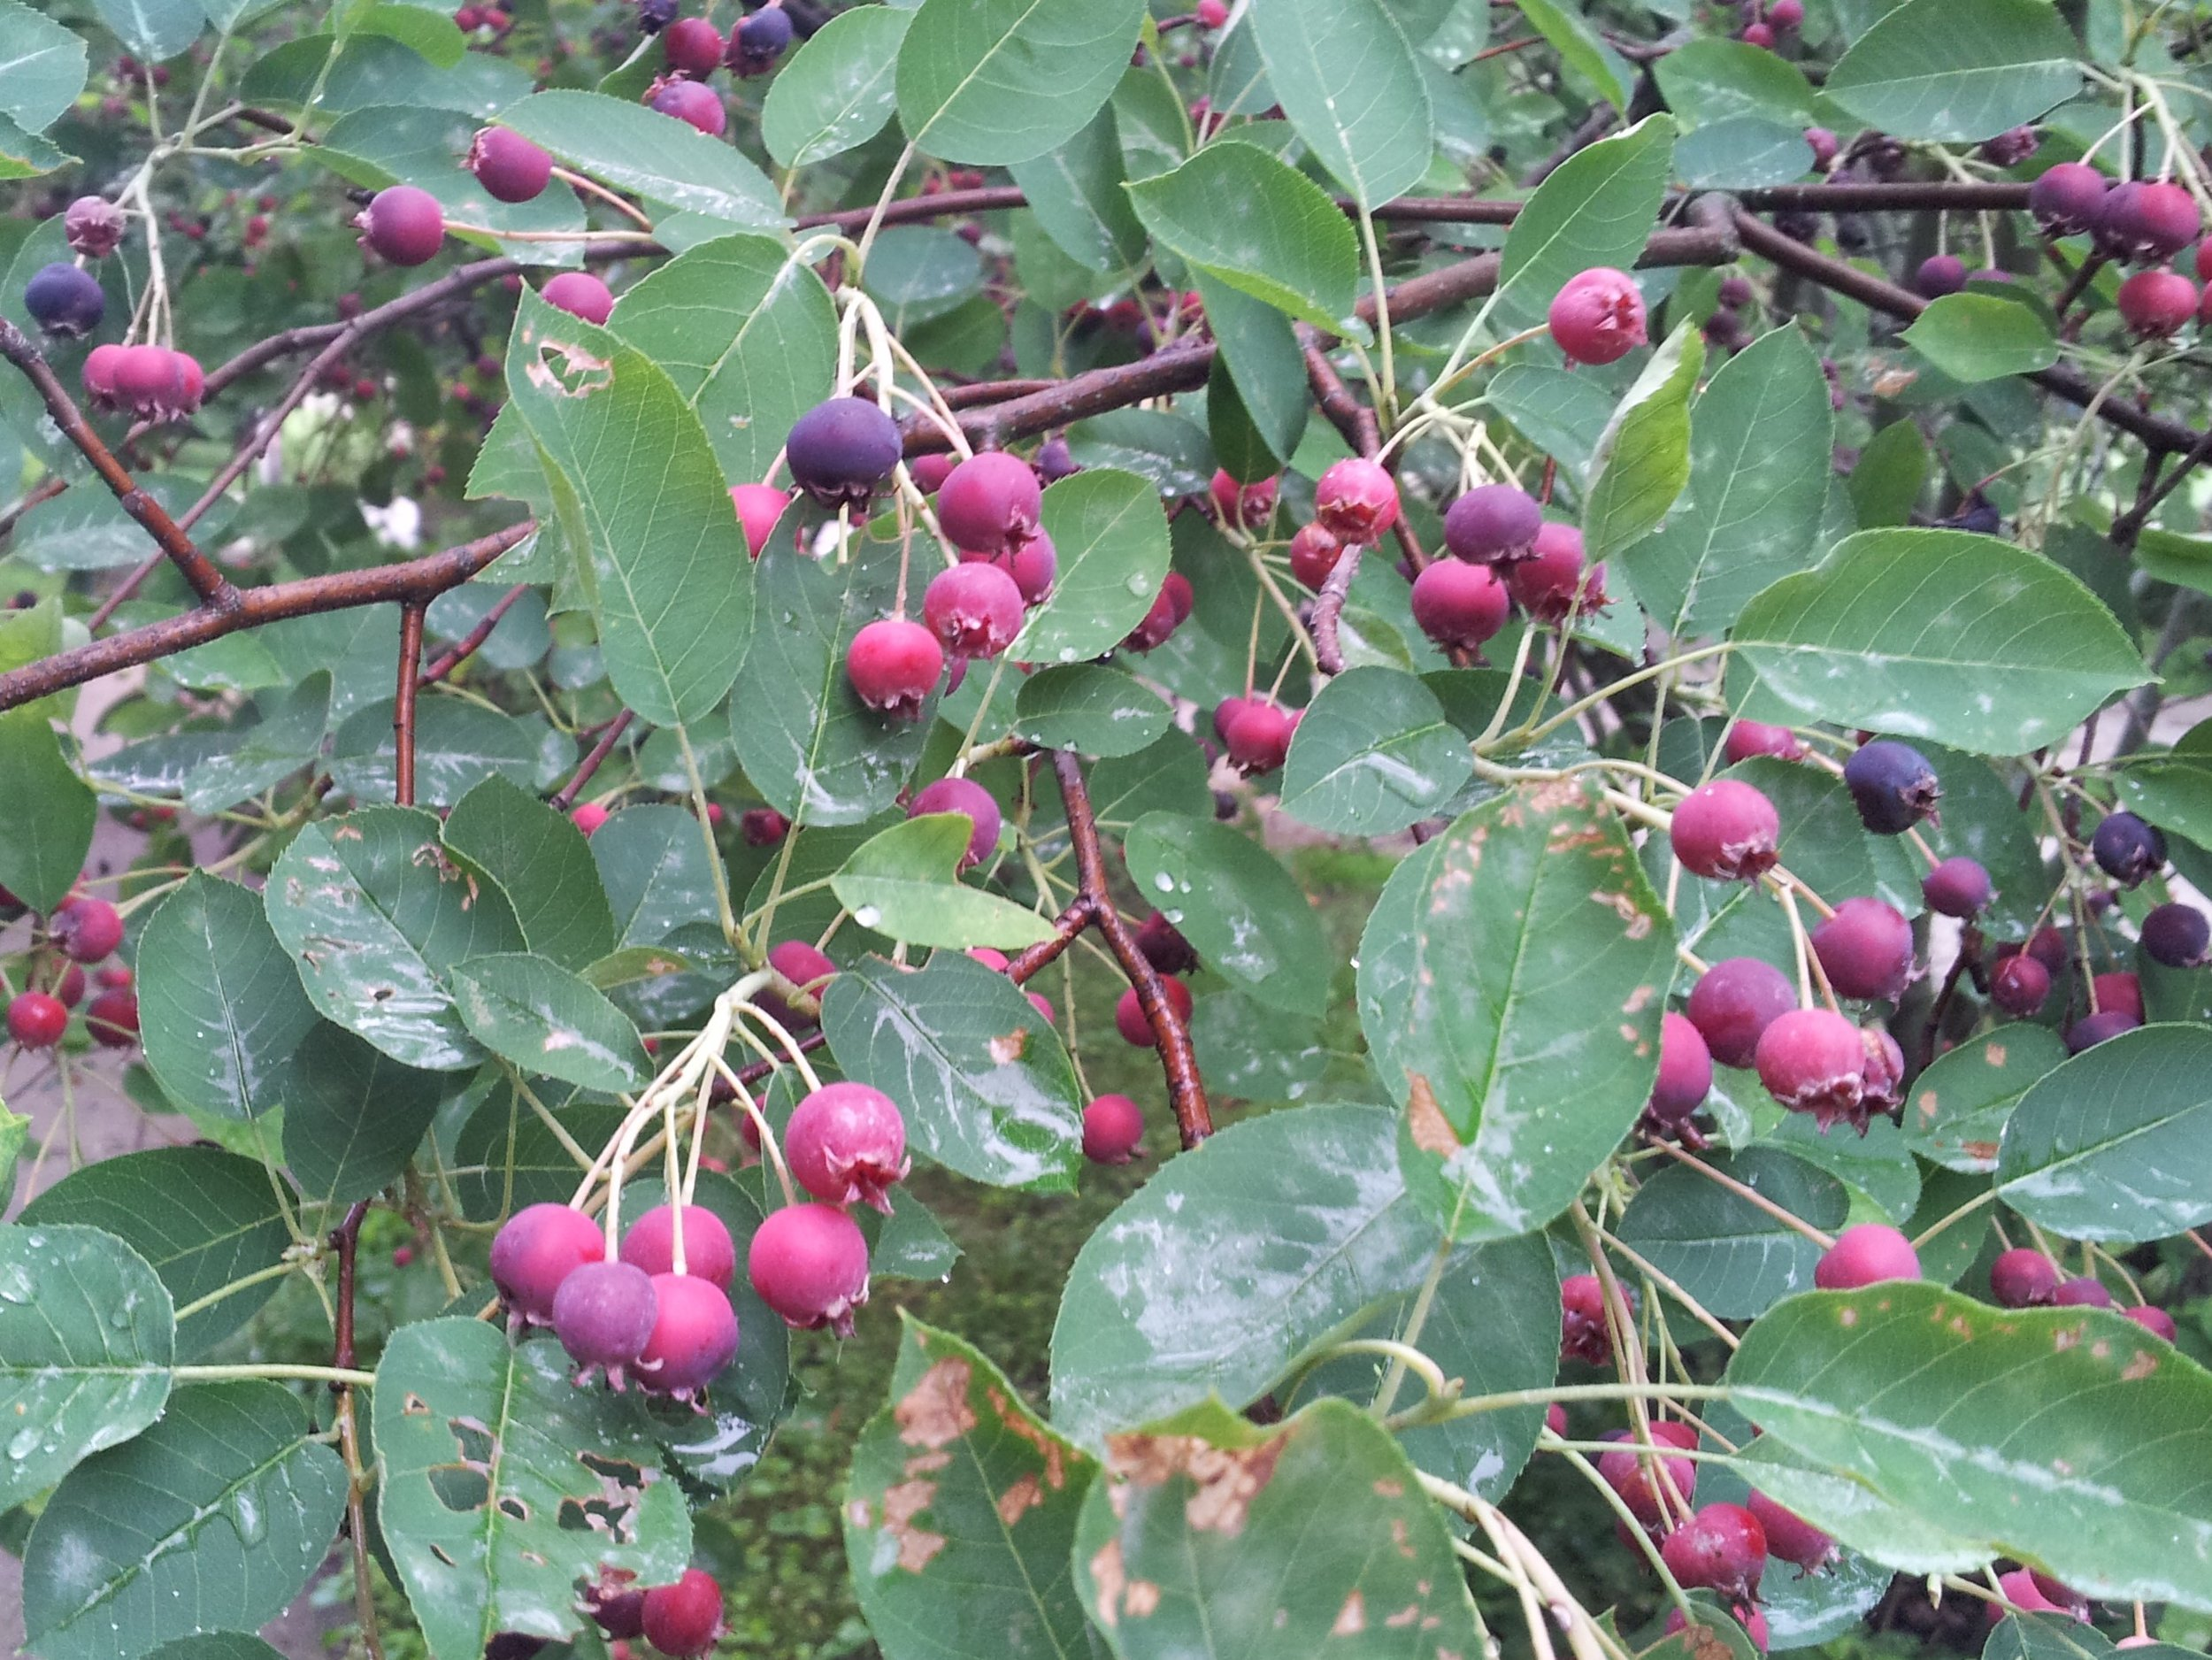 Ripening Juneberries attract birds (and people).